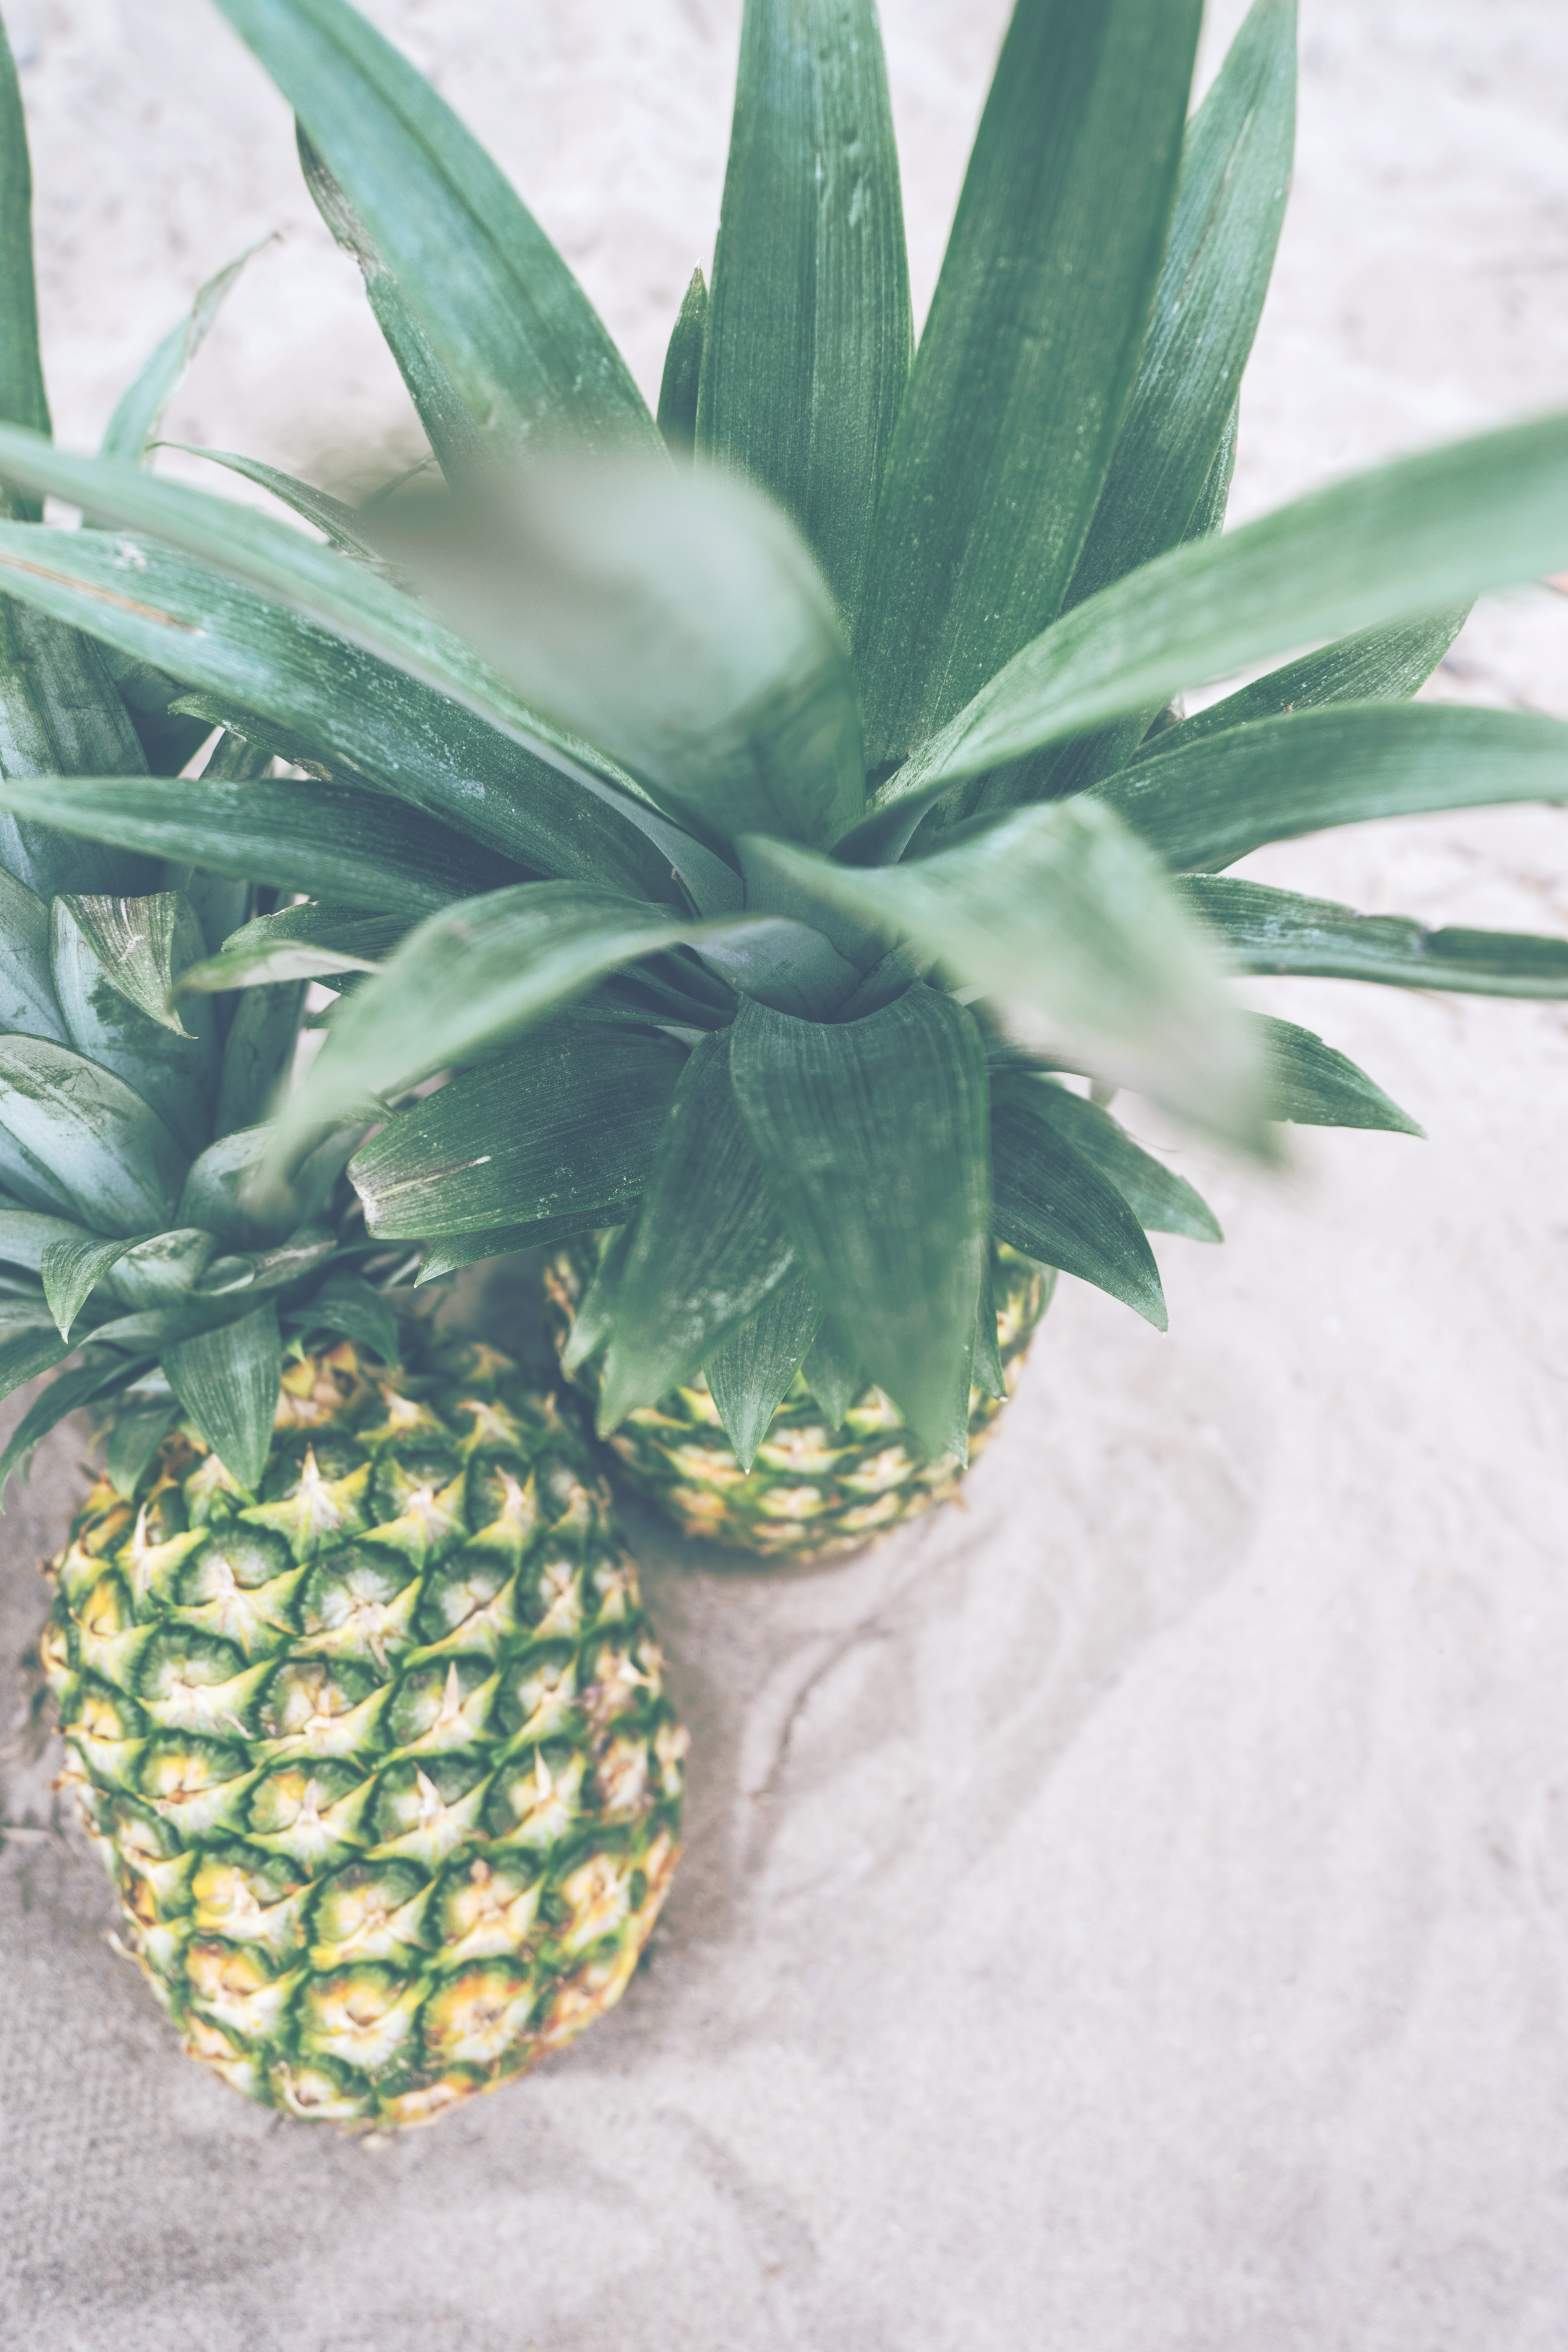 Two pineapples next to each other.